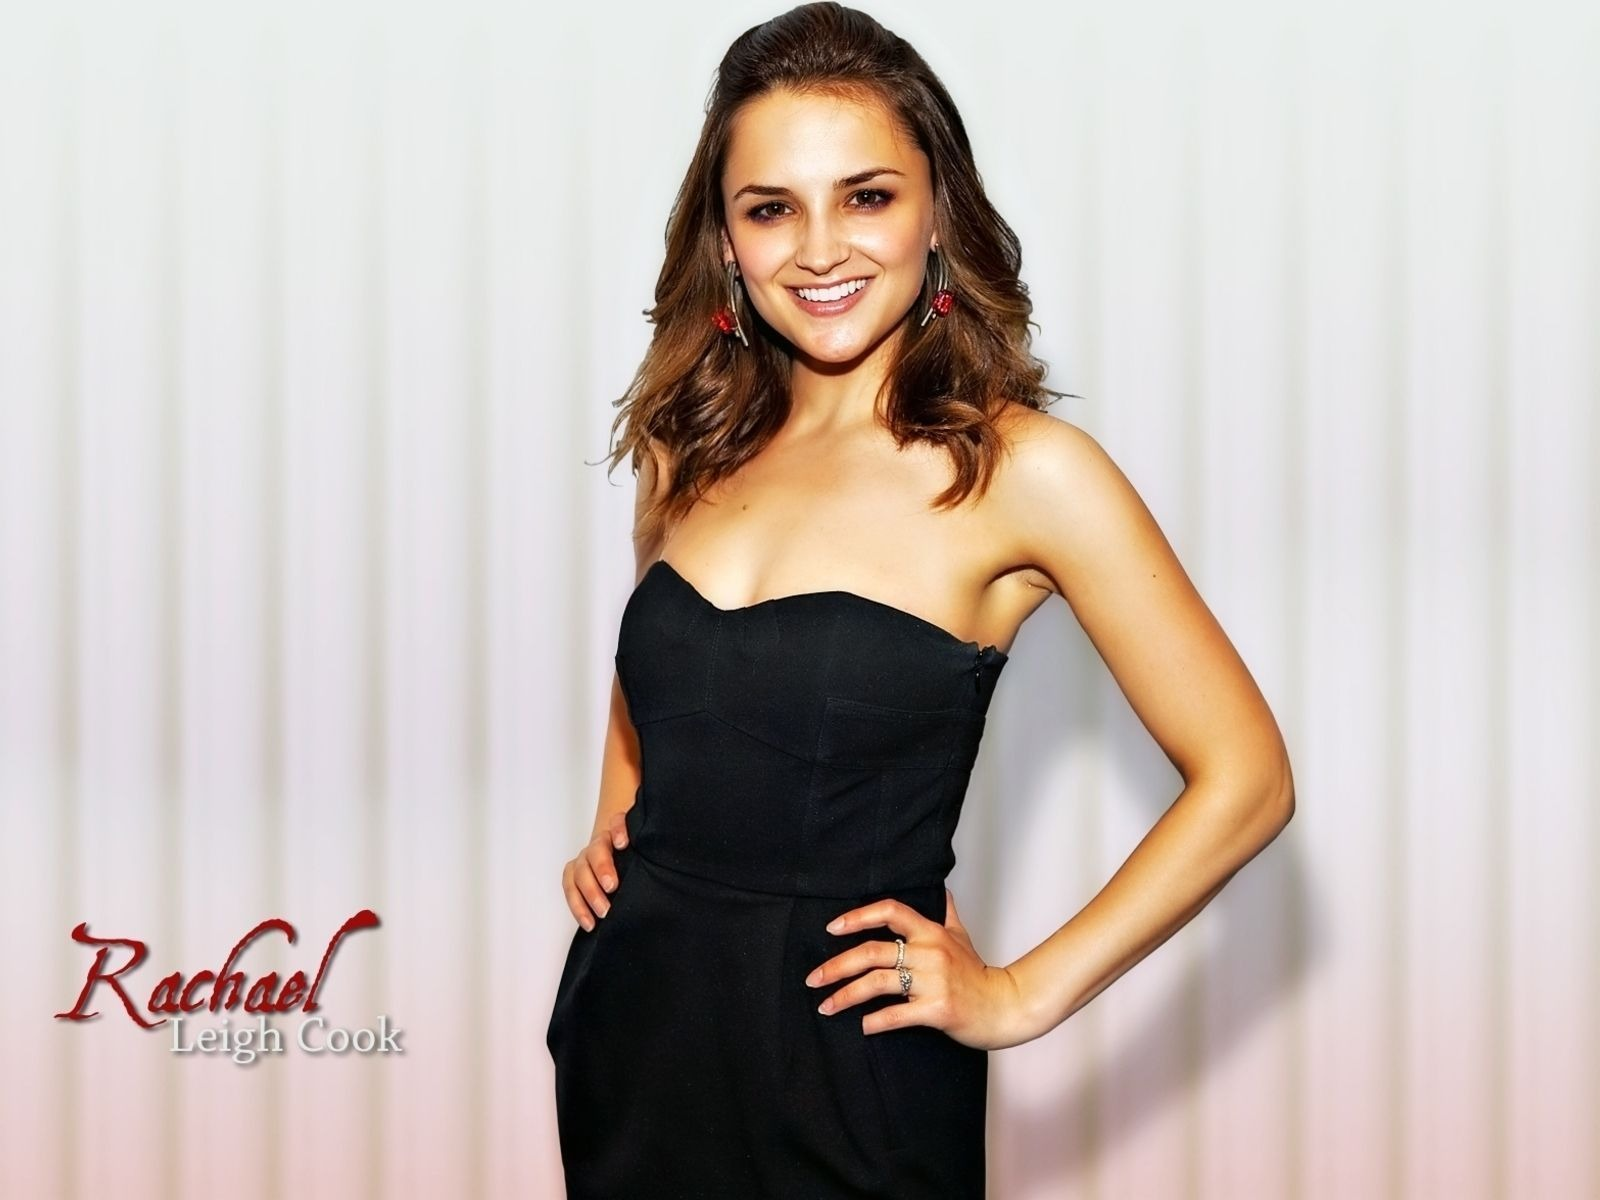 Rachael Leigh Cook #015 - 1600x1200 Wallpapers Pictures Photos Images